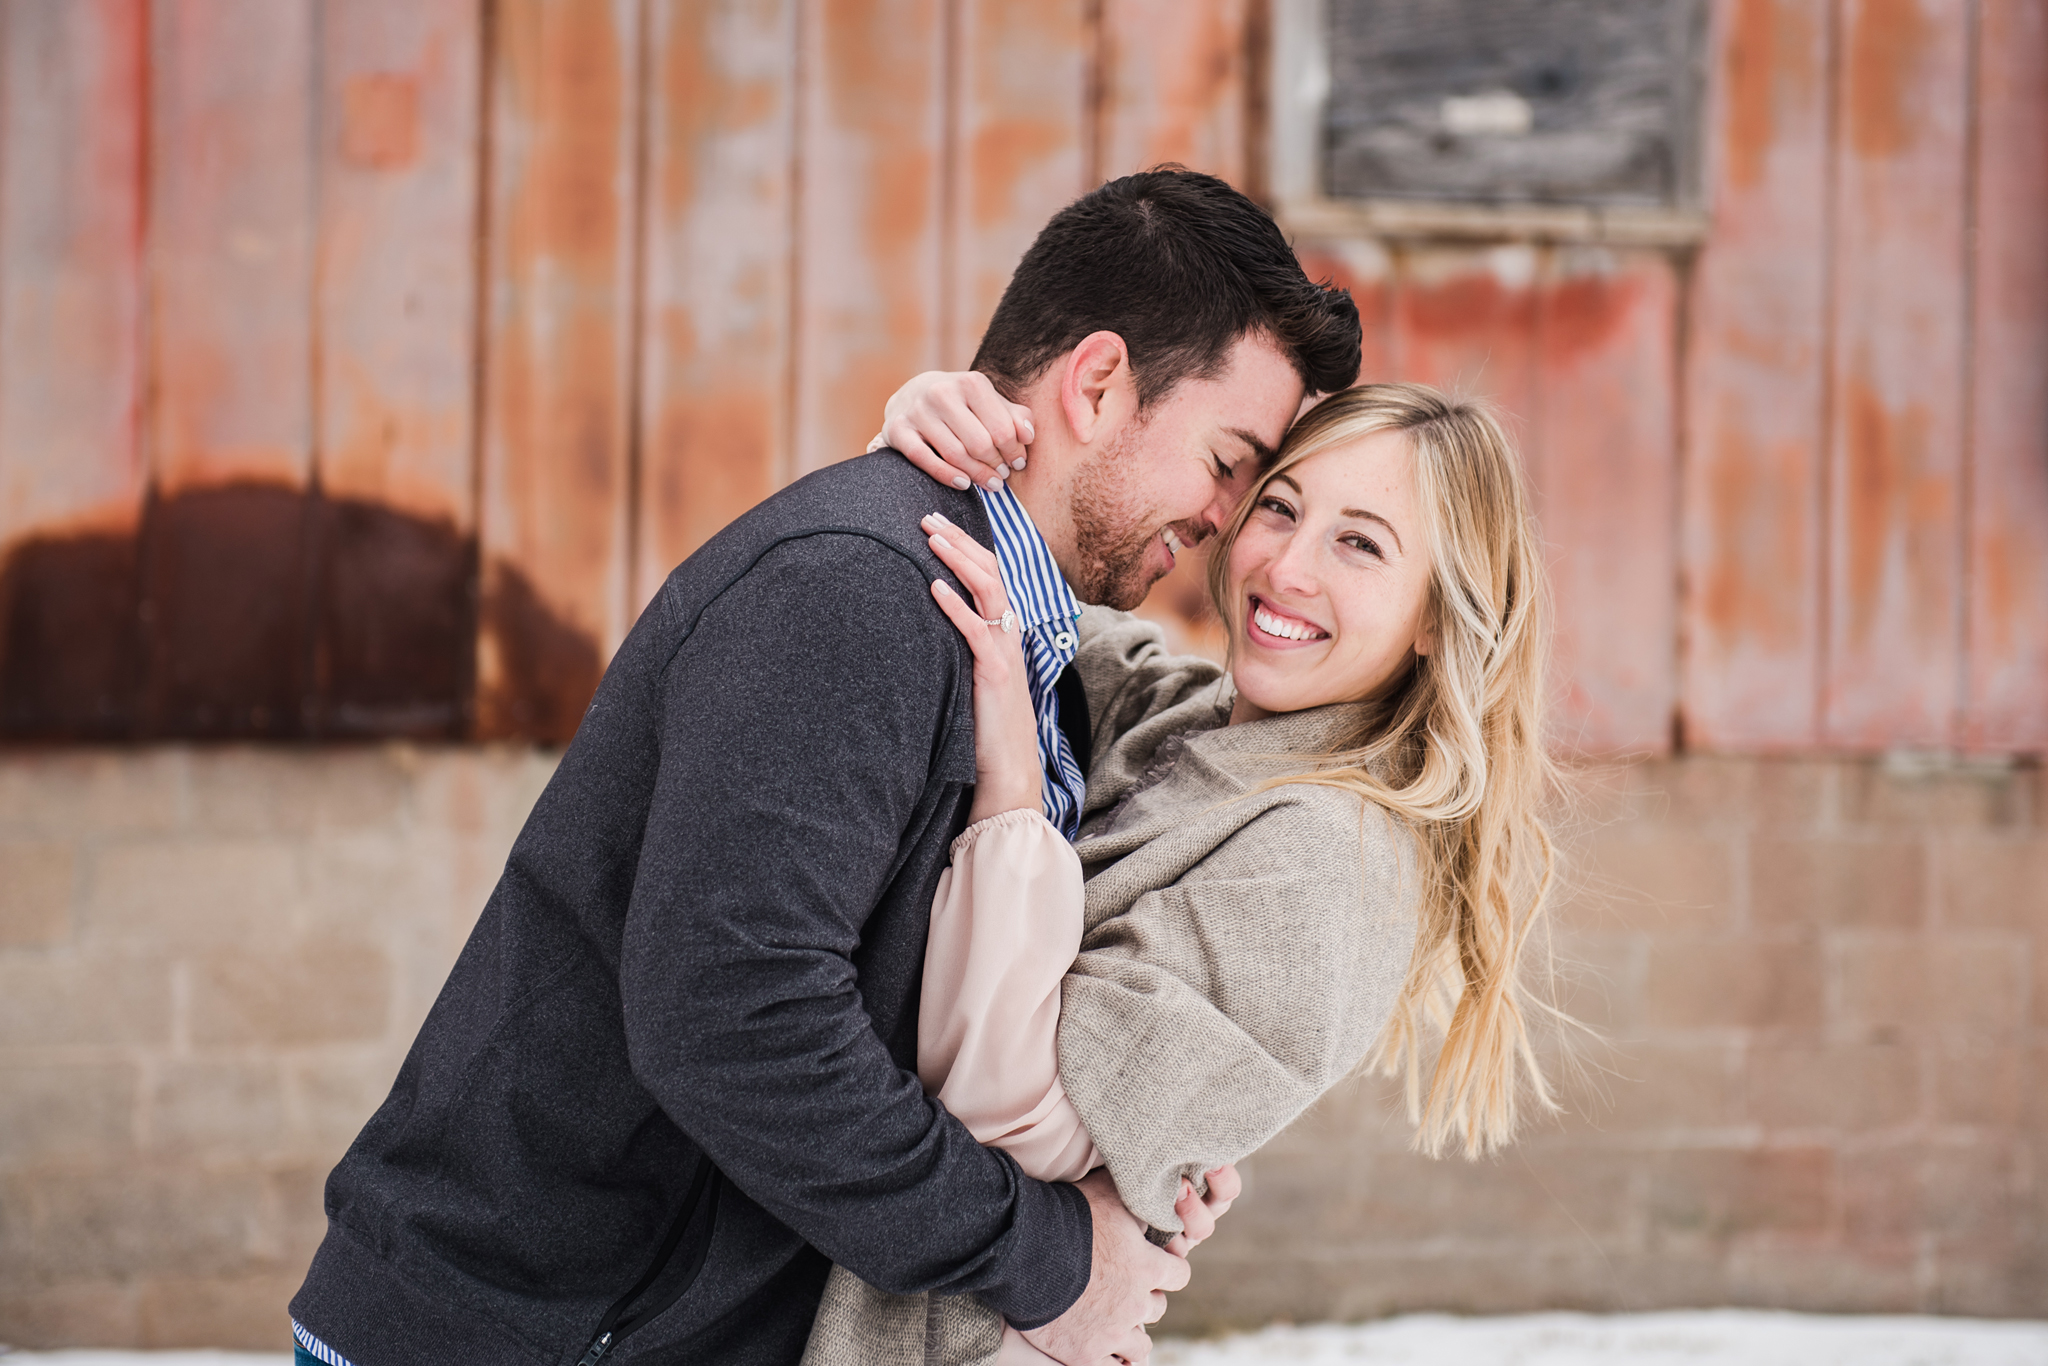 Schoen_Place_Rochester_Engagement_Session_JILL_STUDIO_Rochester_NY_Photographer_DSC_1246.jpg